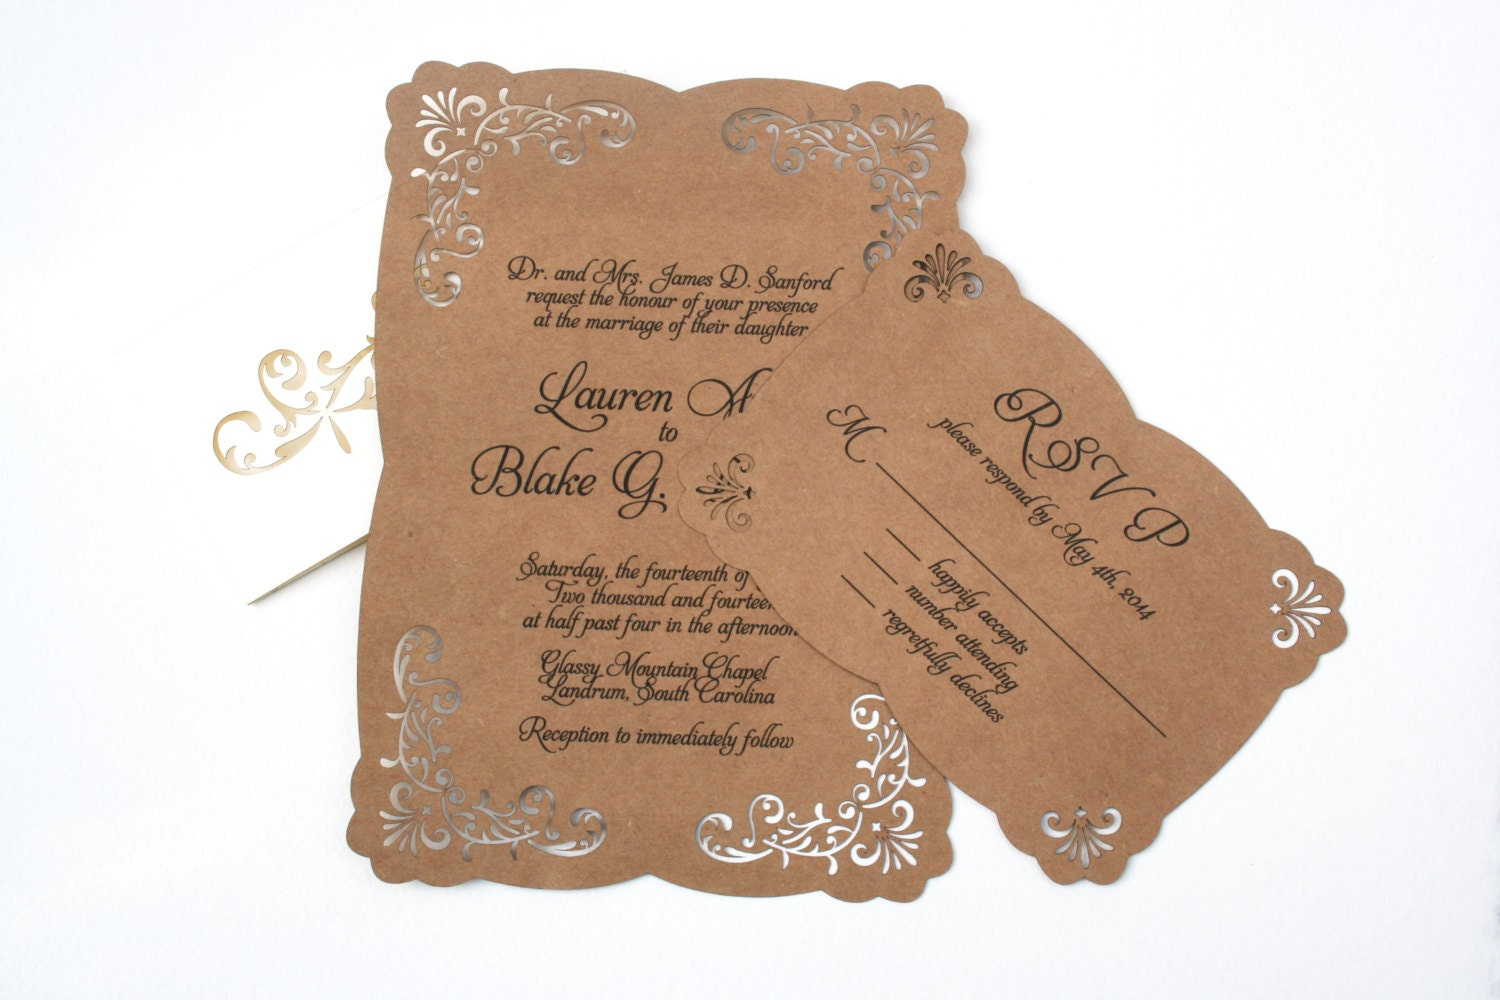 Wedding Invitation With Lace: Lace Laser Cut Vintage Inspired Wedding Invitation: Elegant